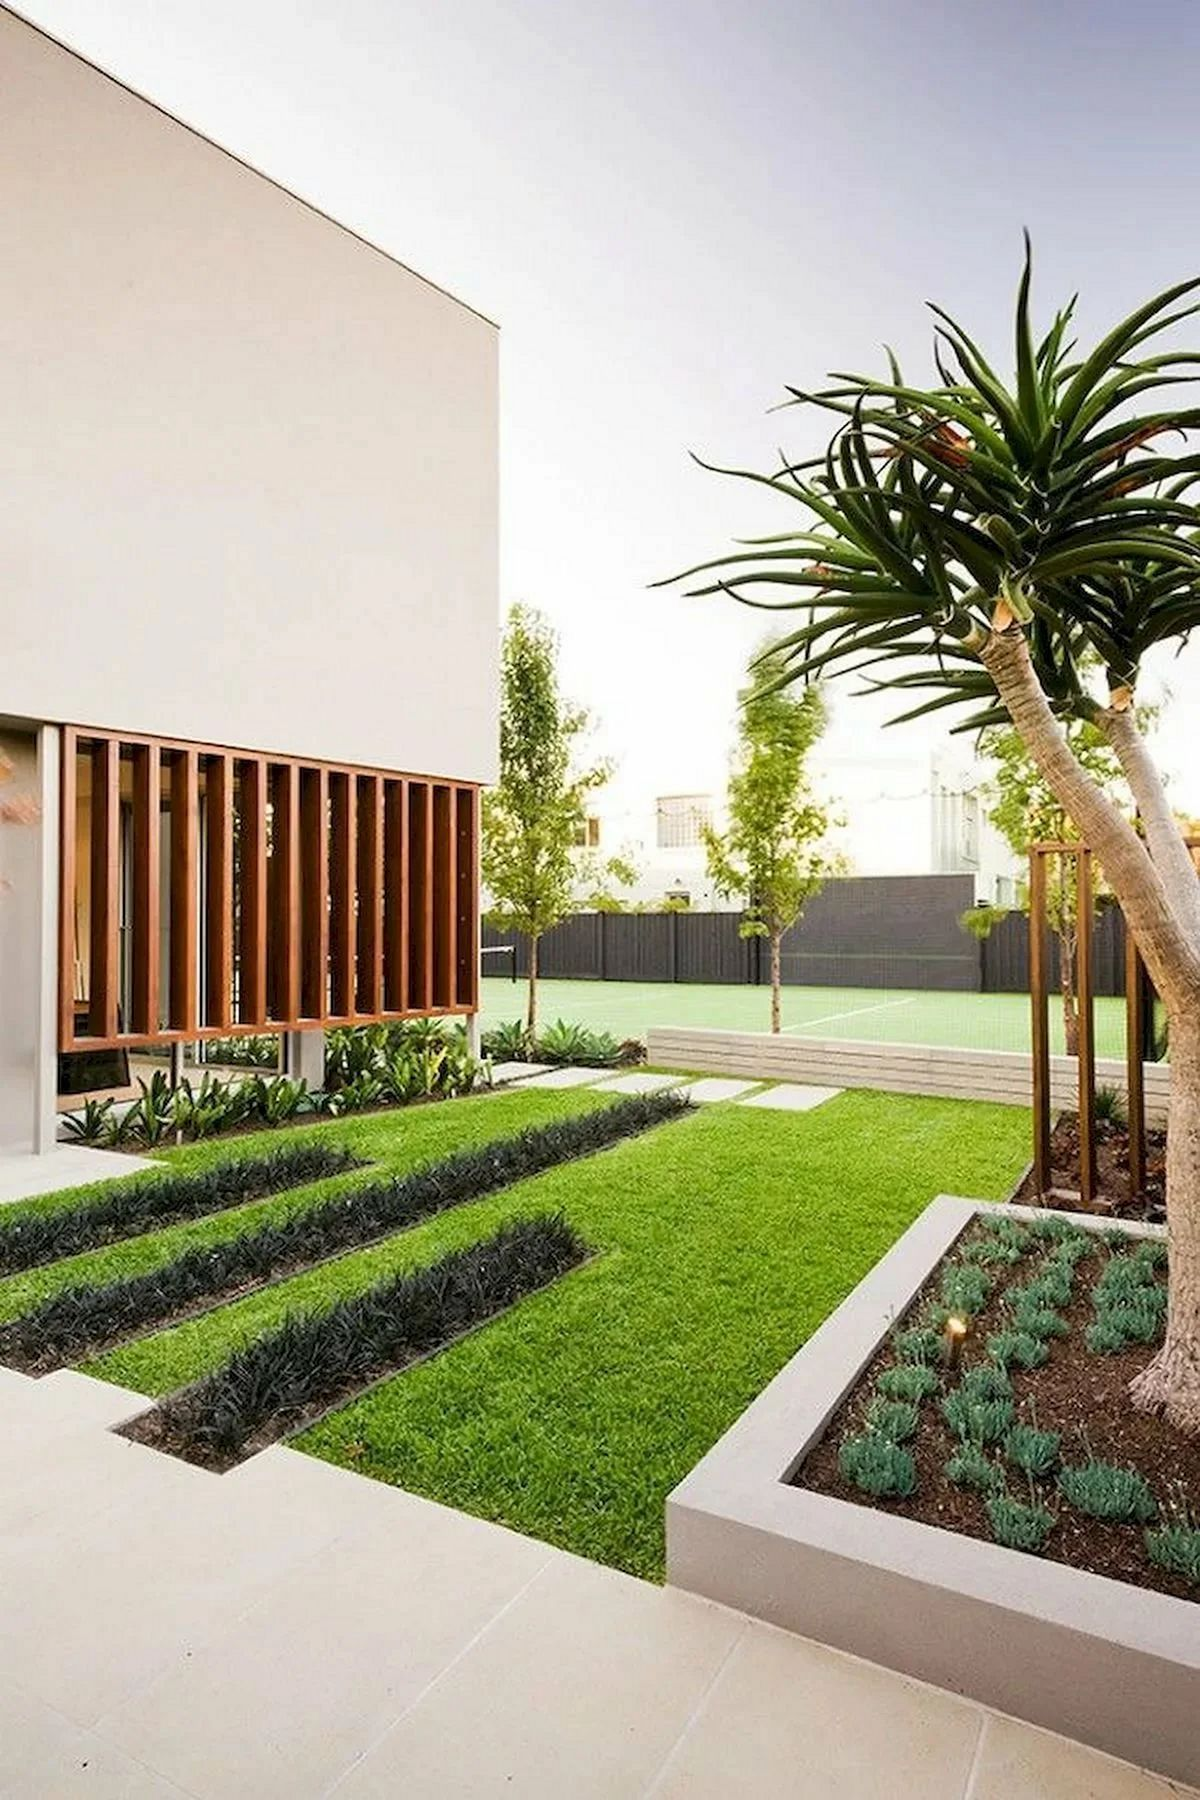 Photo of Phenomenal 7 Incredible Modern Front Yard Design Ideas That Will Make Your Home …